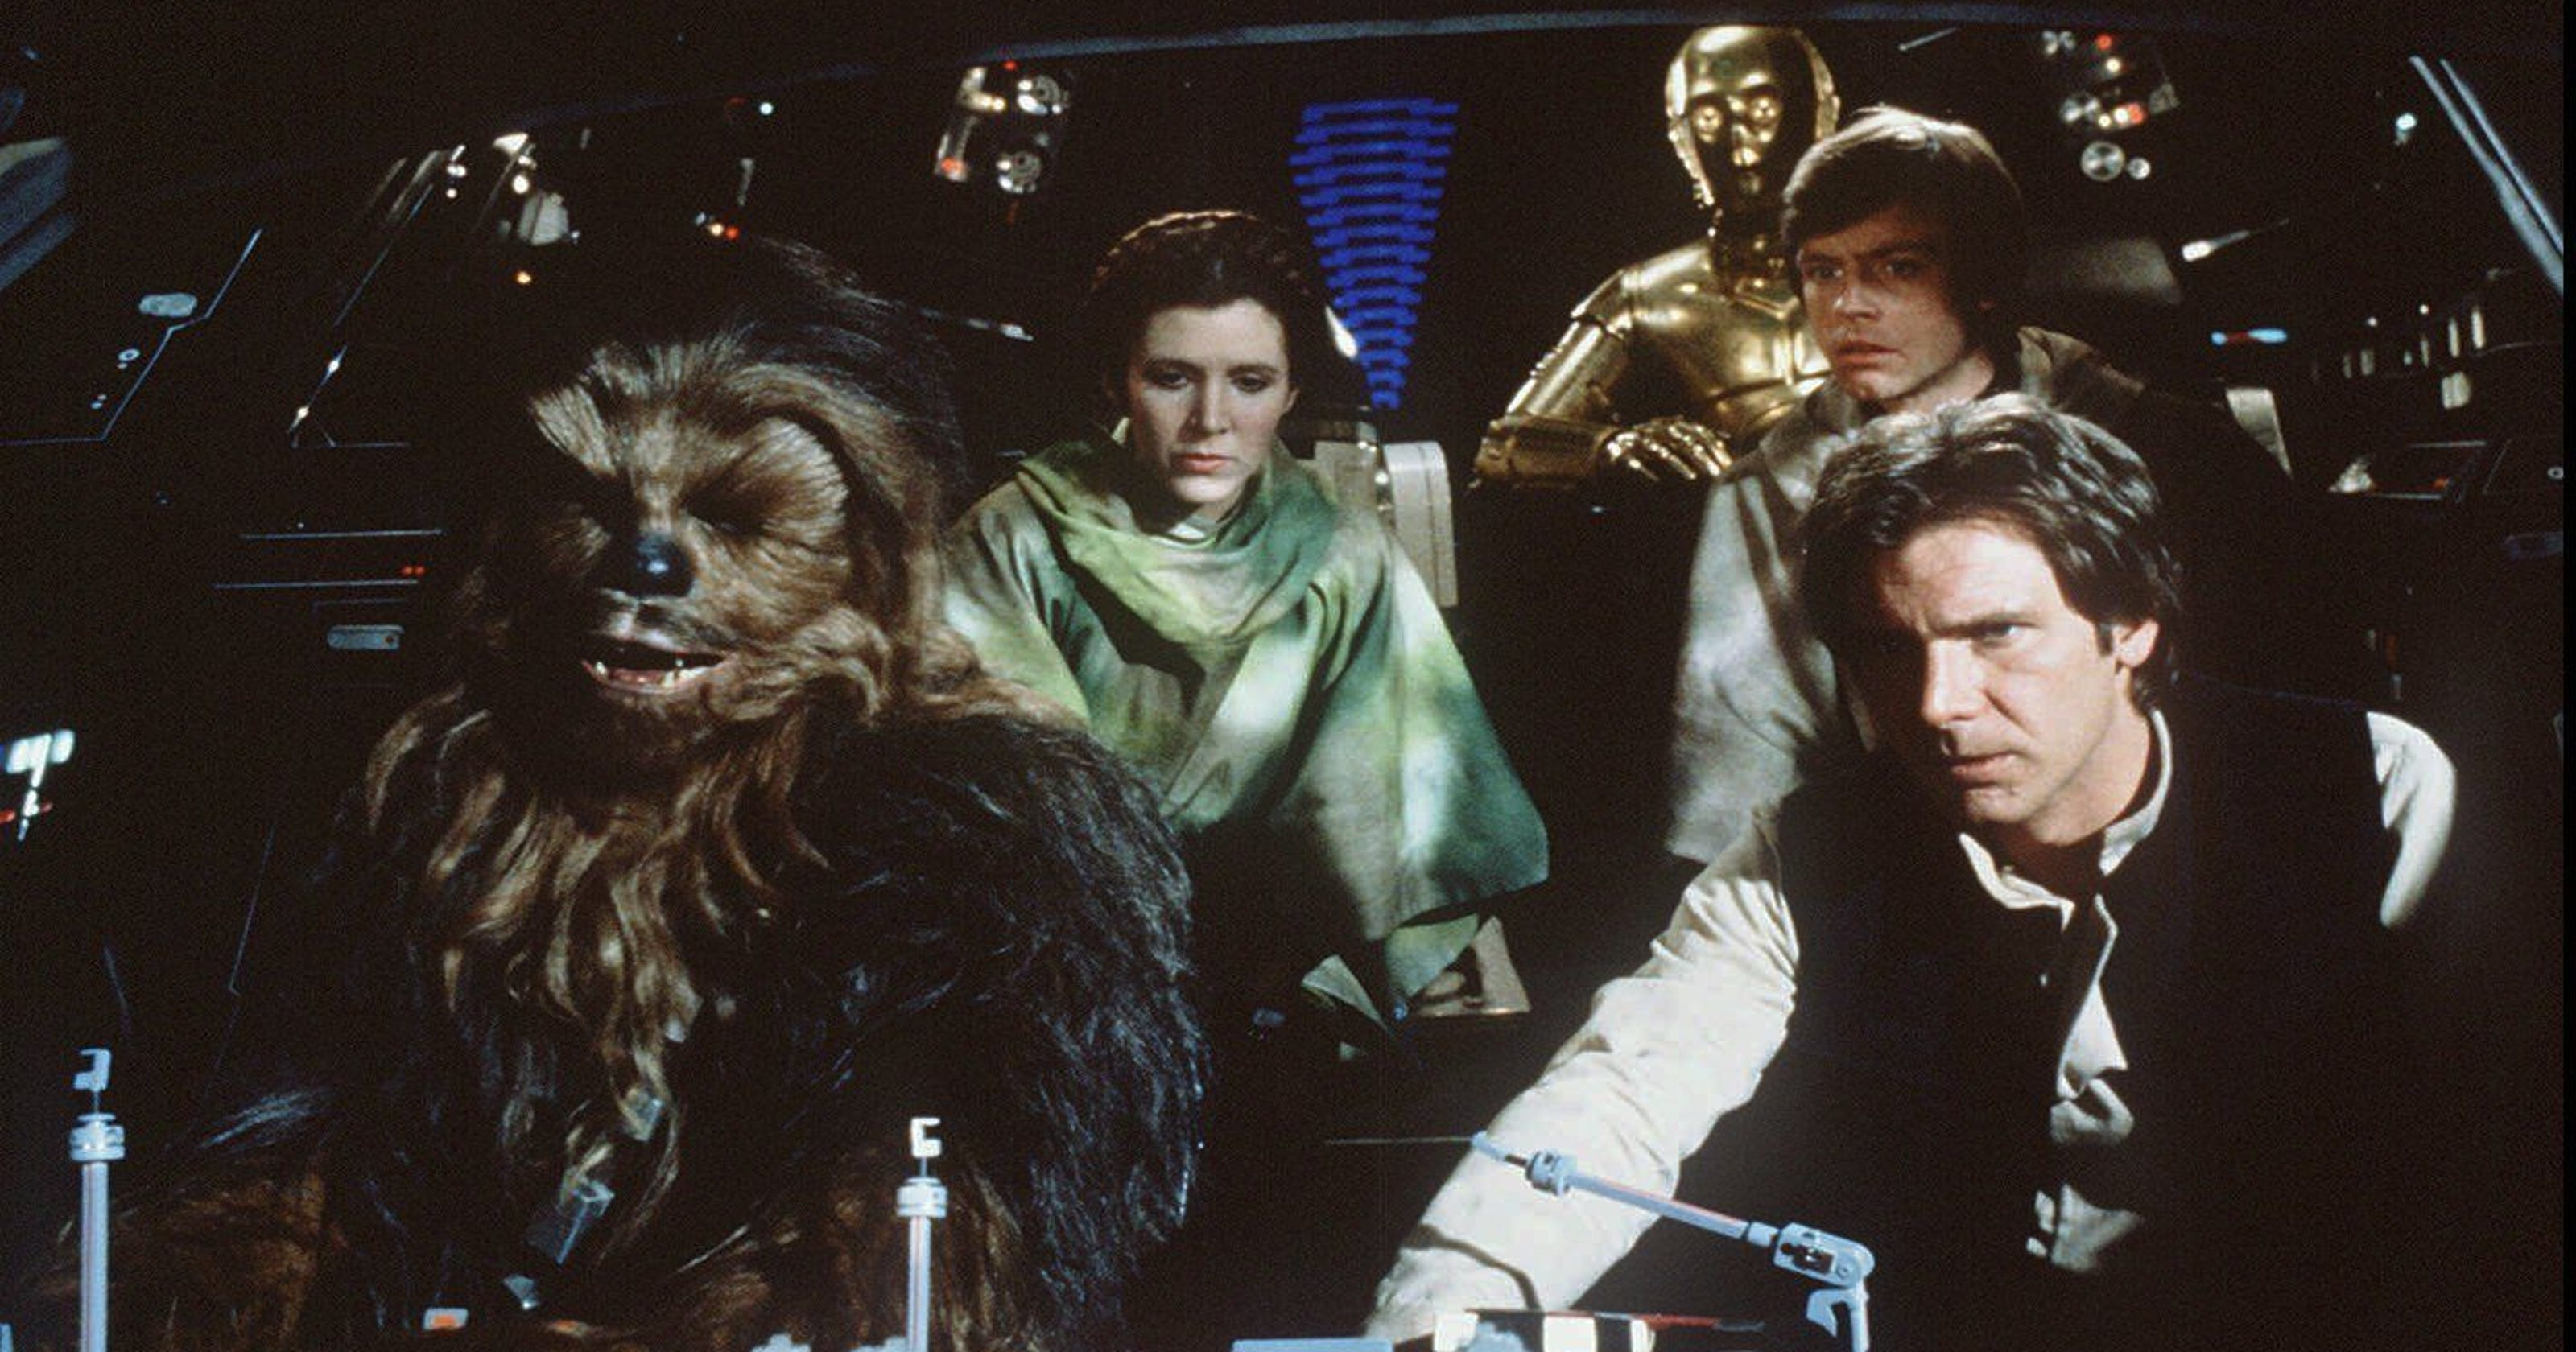 Star Wars' 40th anniversary: The 40 best movie characters, ranked